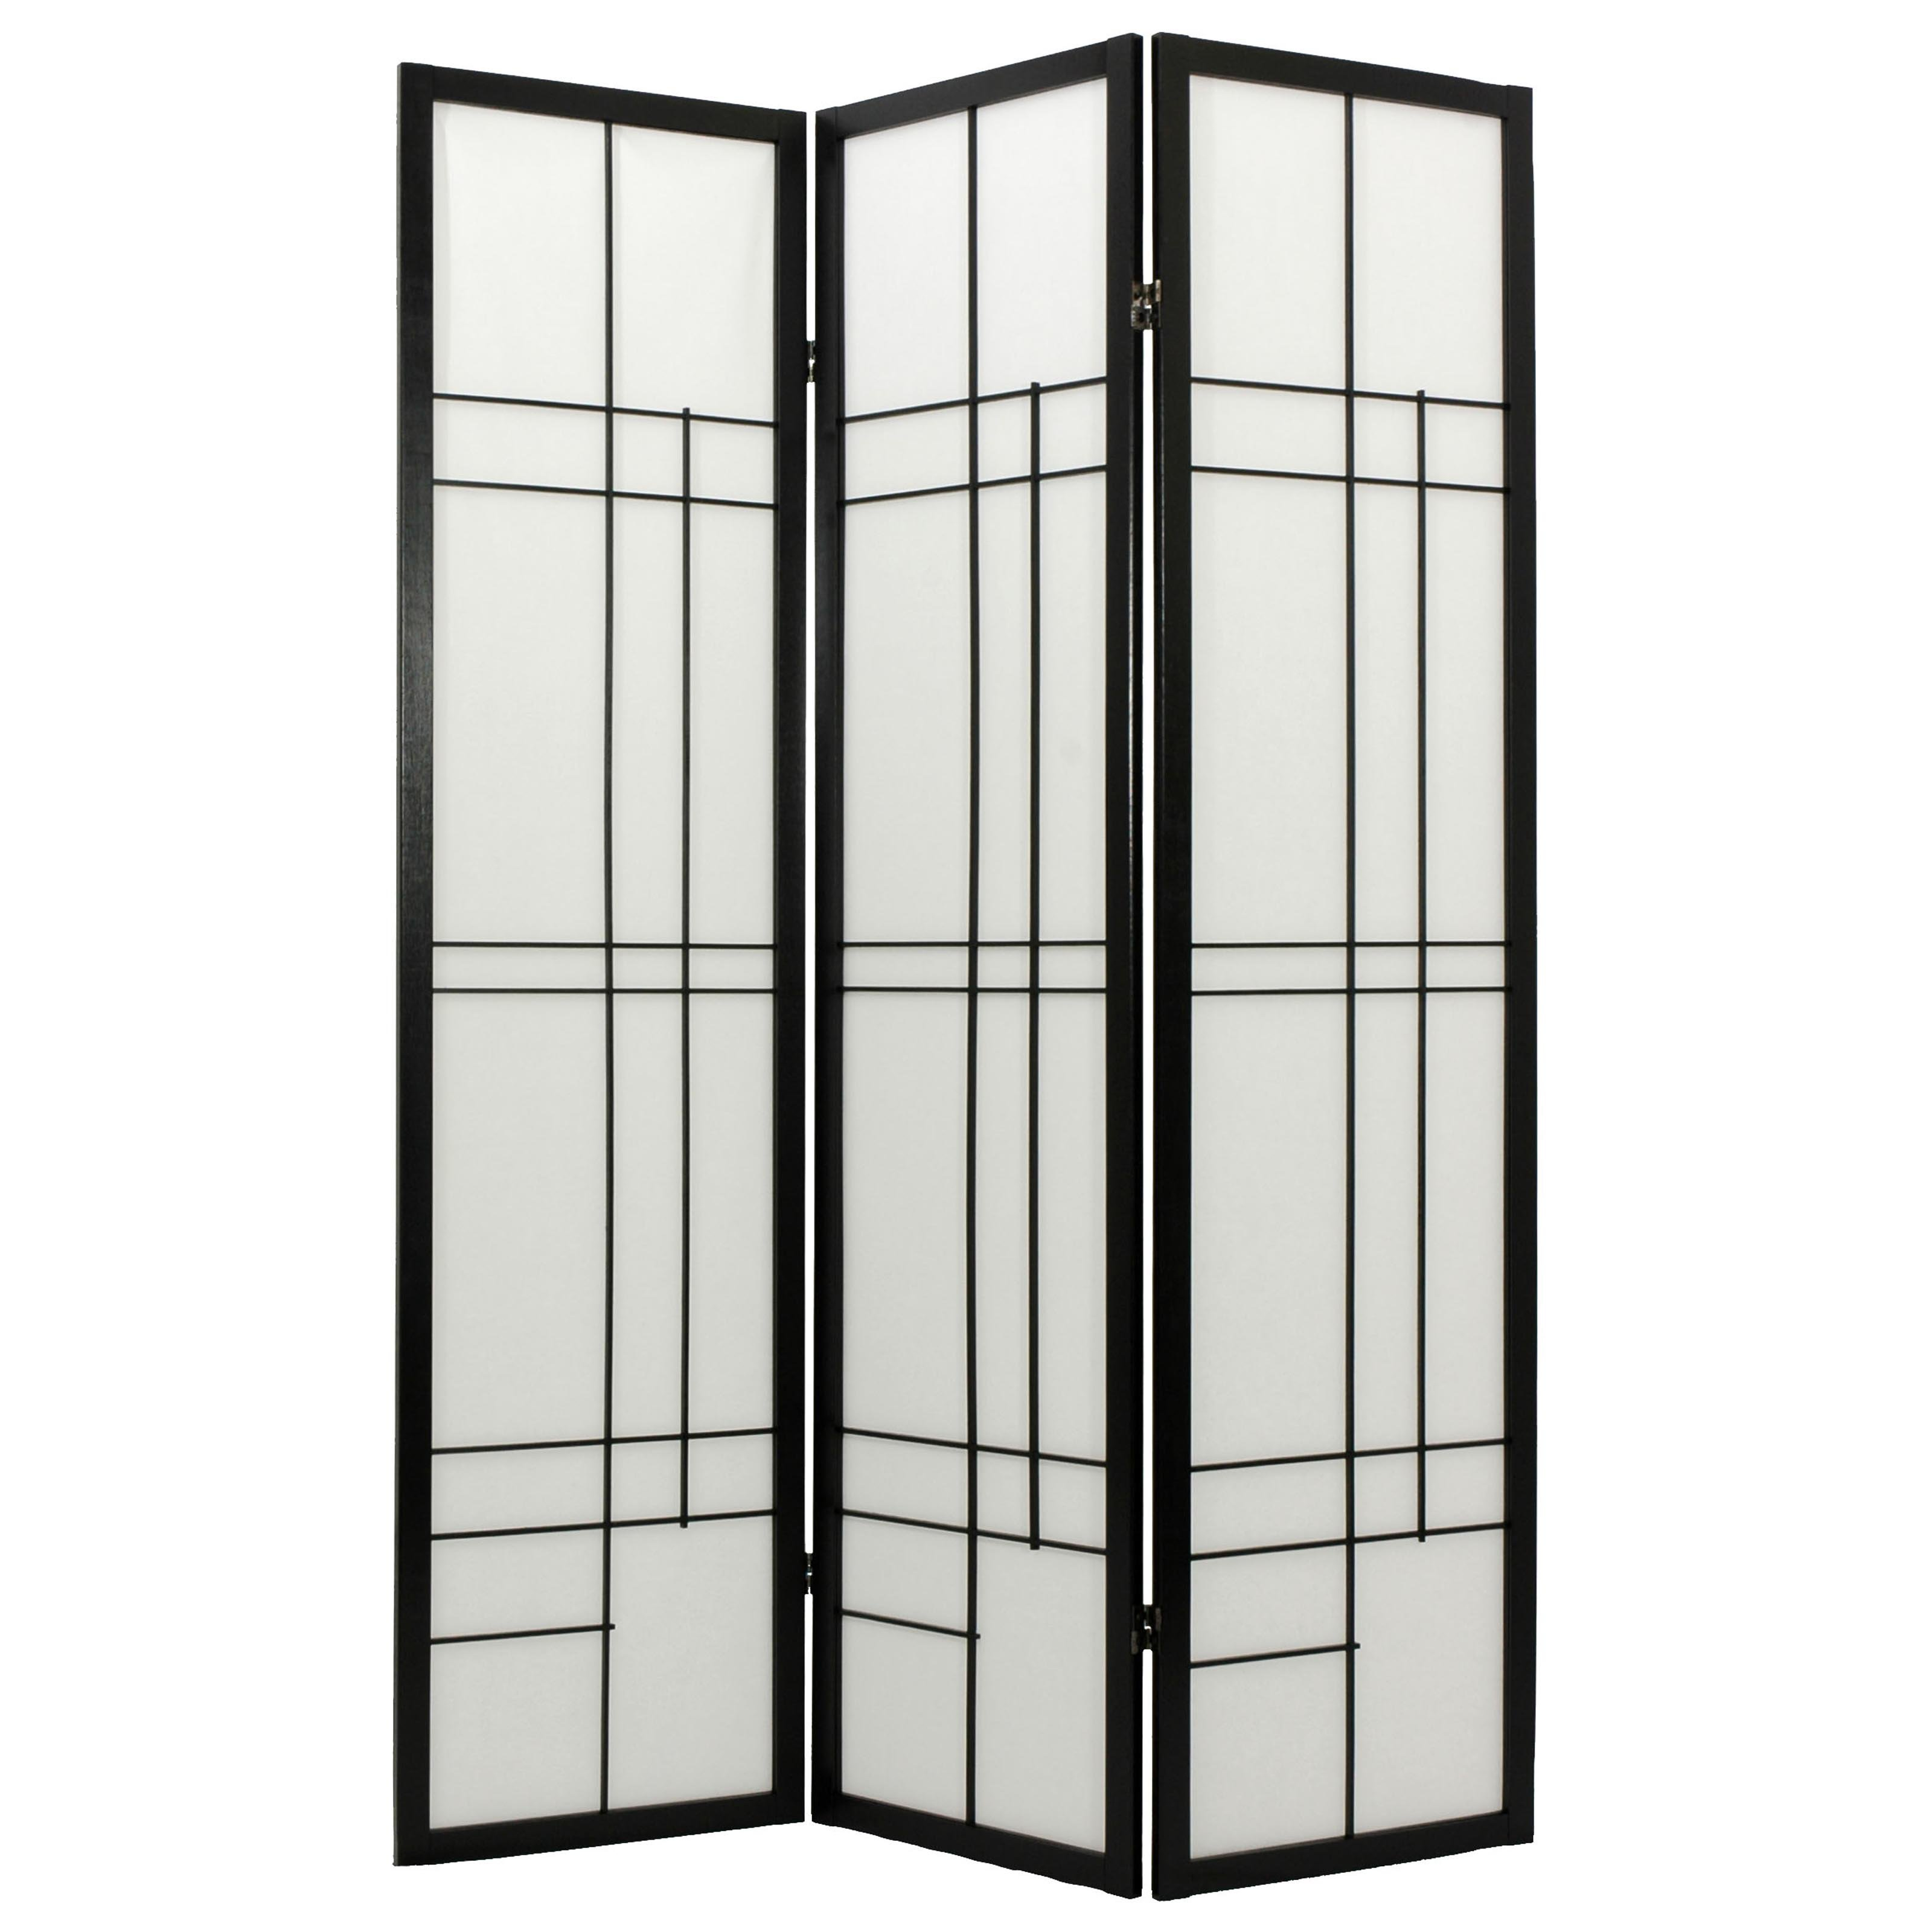 Oriental Furniture Eudes Shoji Screen Room Divider Walmartcom